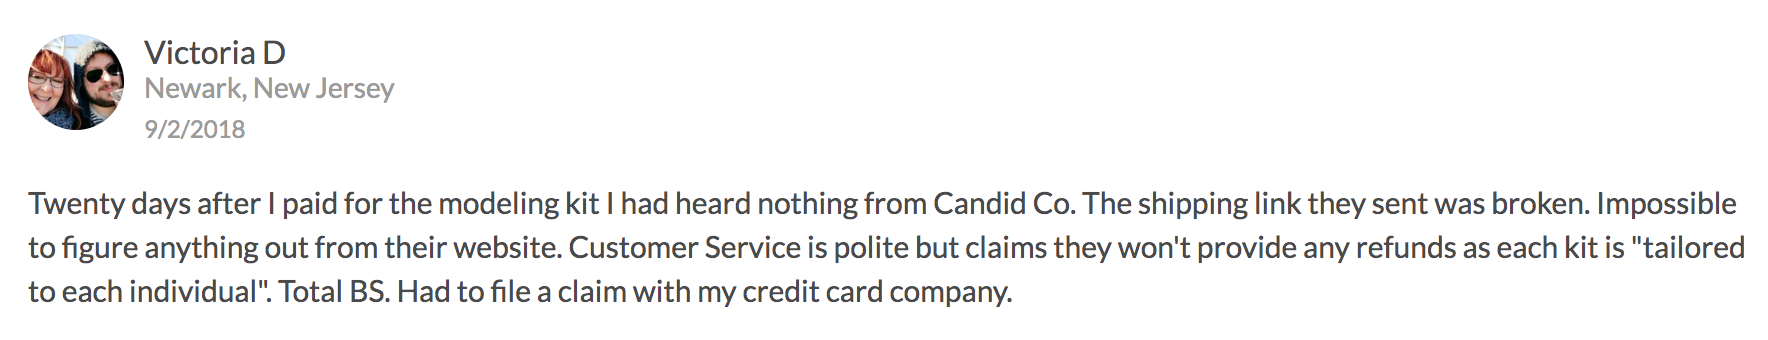 bad review #3candid co